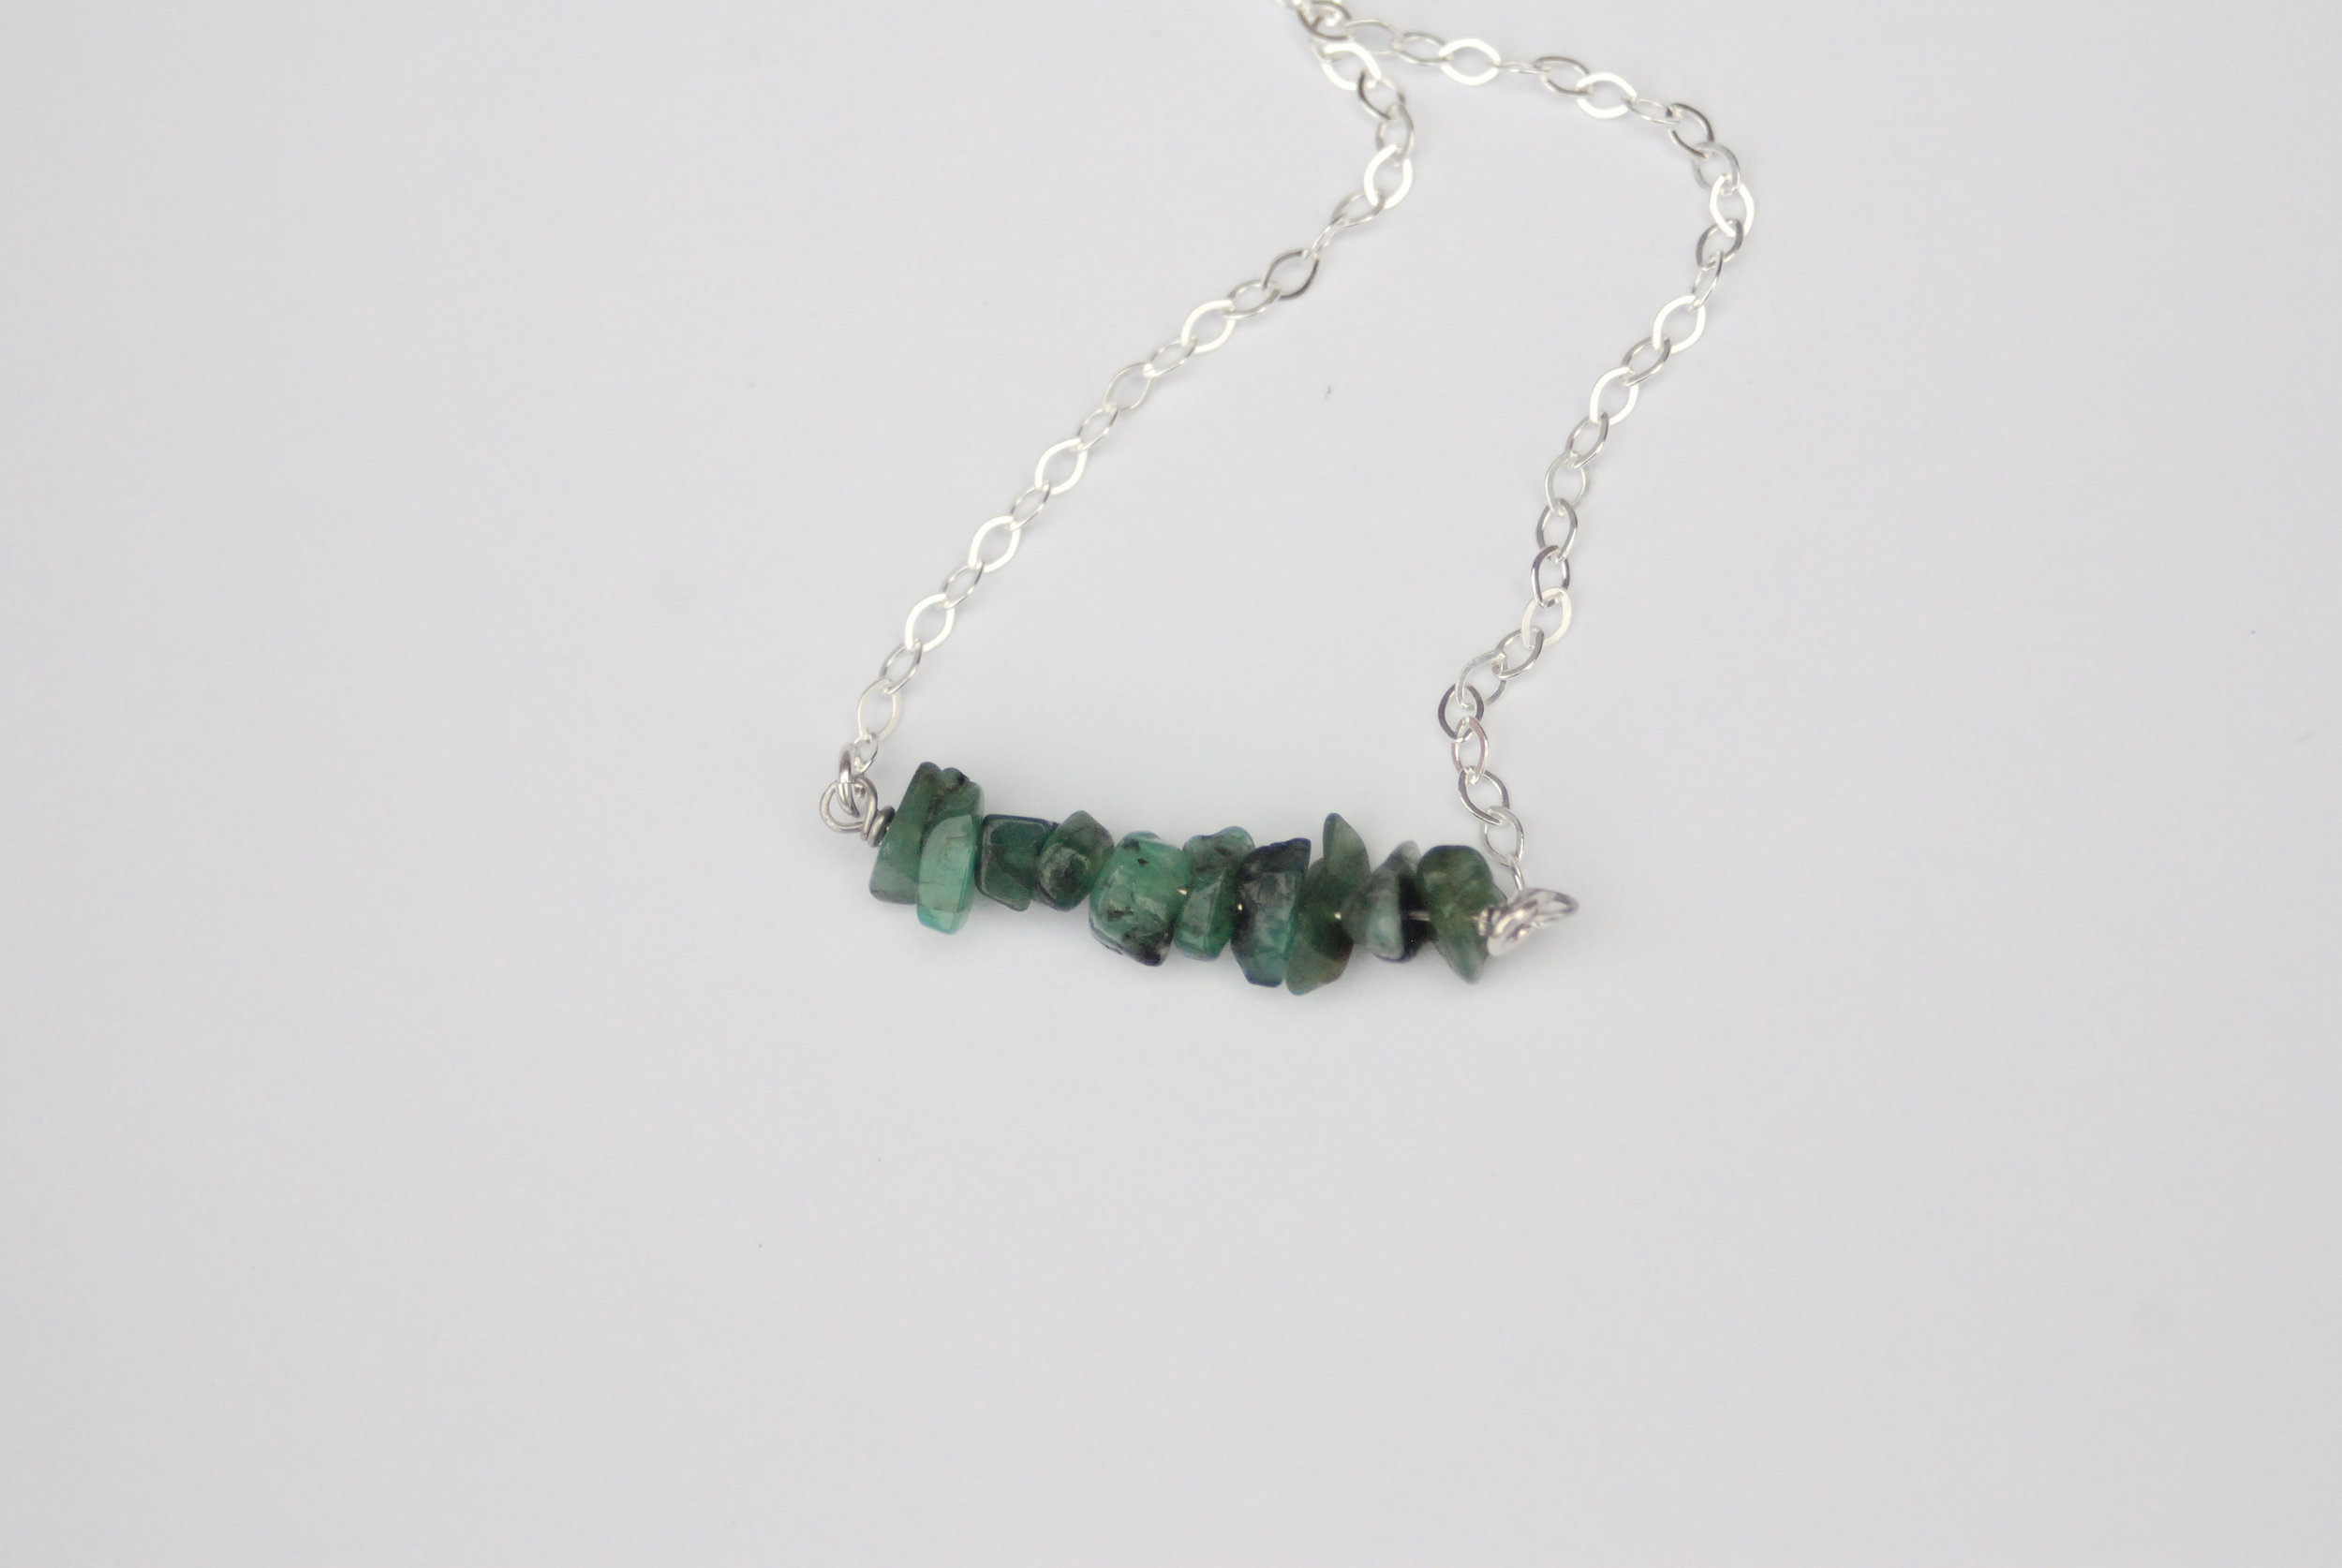 The May birthstone, emerald, with its rich green hue, is particularly exciting and energizing. Emerald is associated with love, domestic bliss, friendship and positive actions. Find our  May Birthstone Jewelry here.